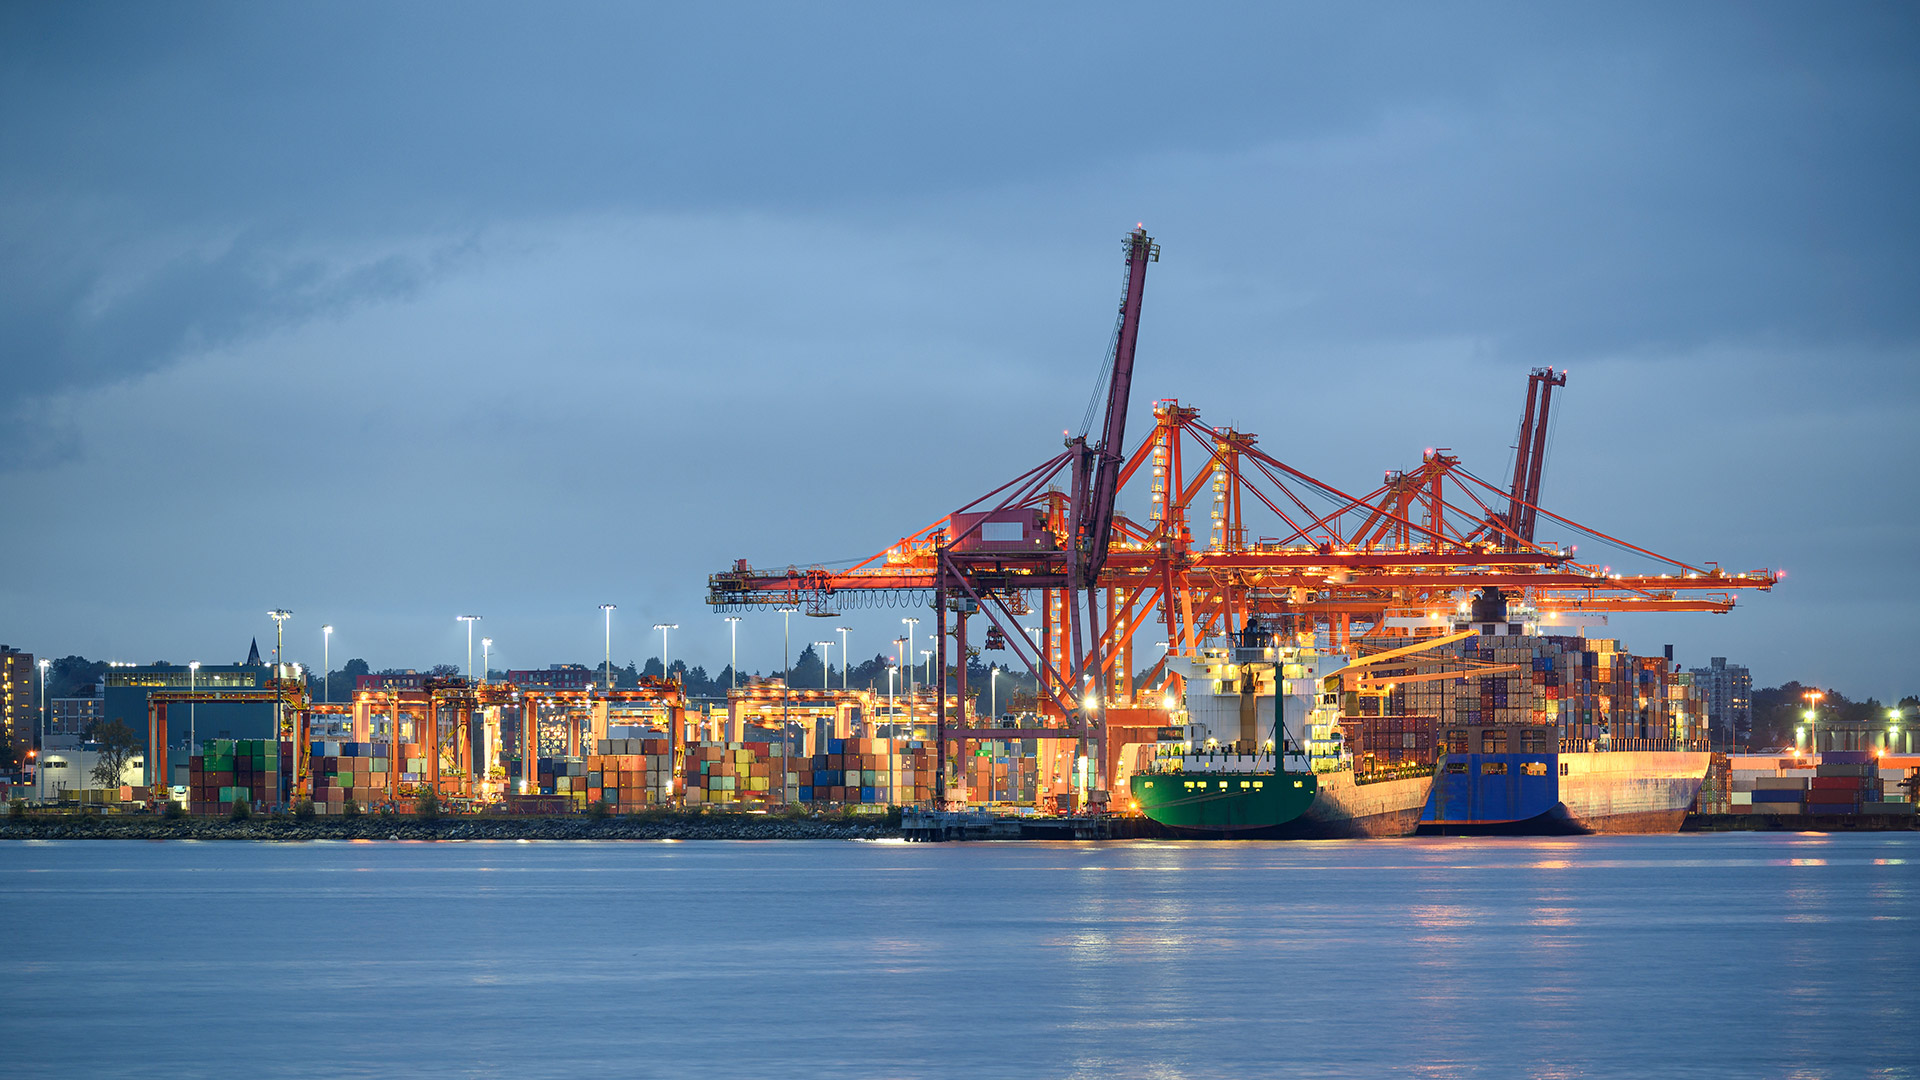 Shipping bay with containers